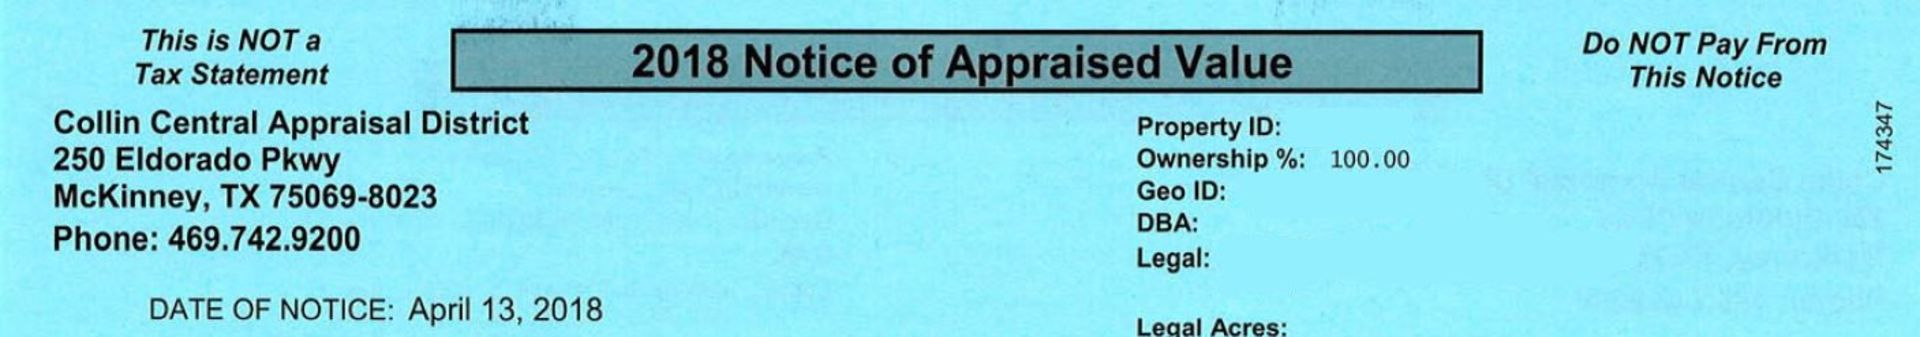 2018 NOTICE OF APPRAISED VALUE